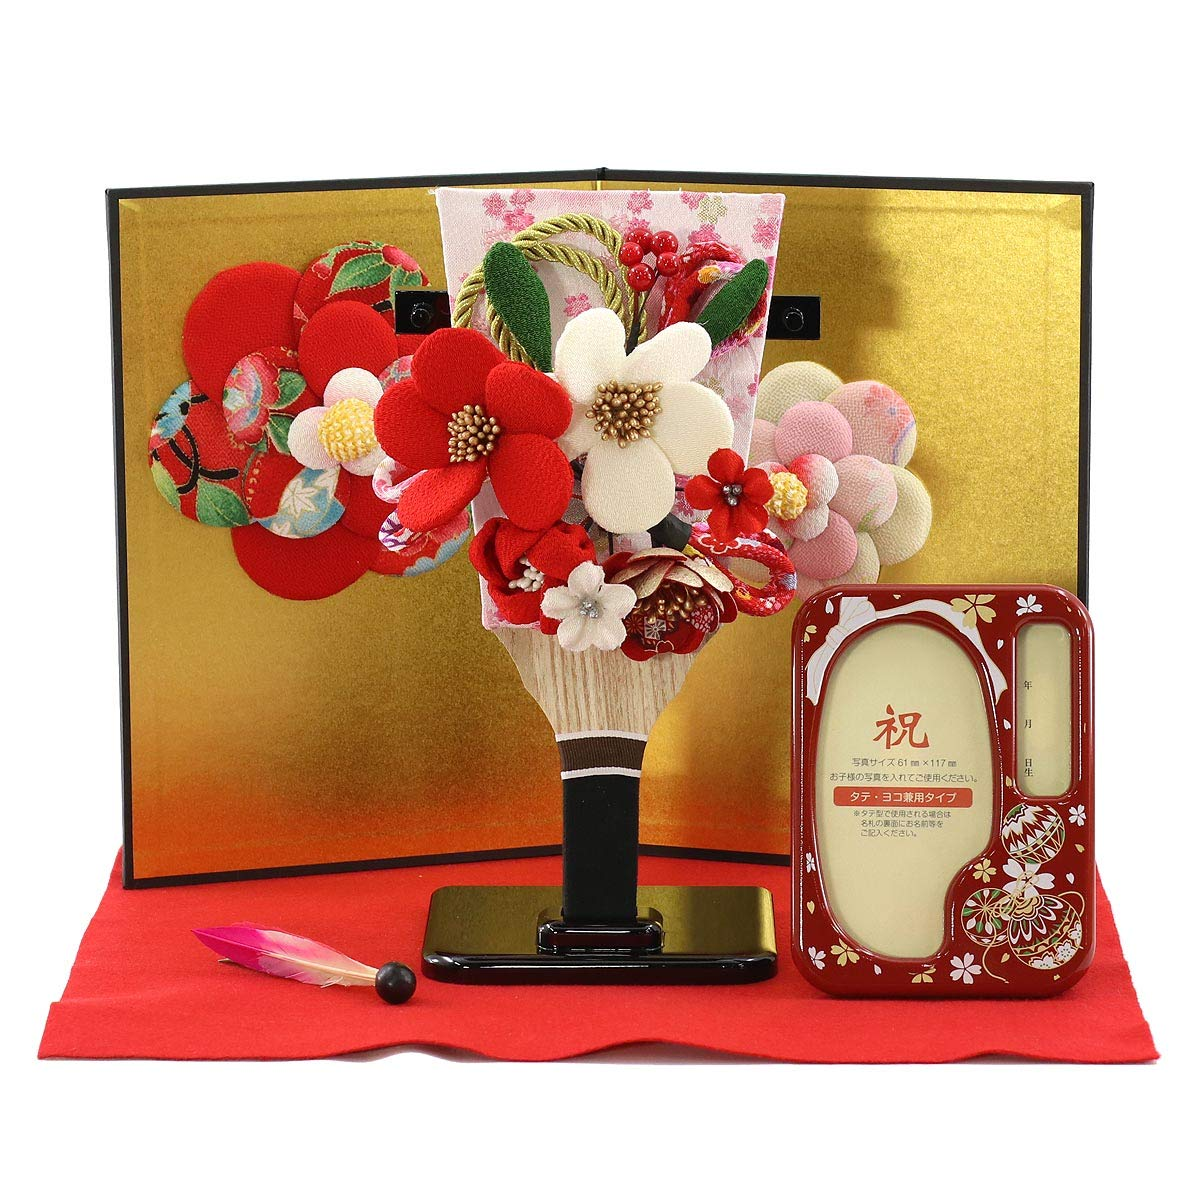 12PC JUMBO GIFT BAG FLORAL DESIGN WITH CLEAR WINDOW IN FRONT ALL OCCASION WRAP